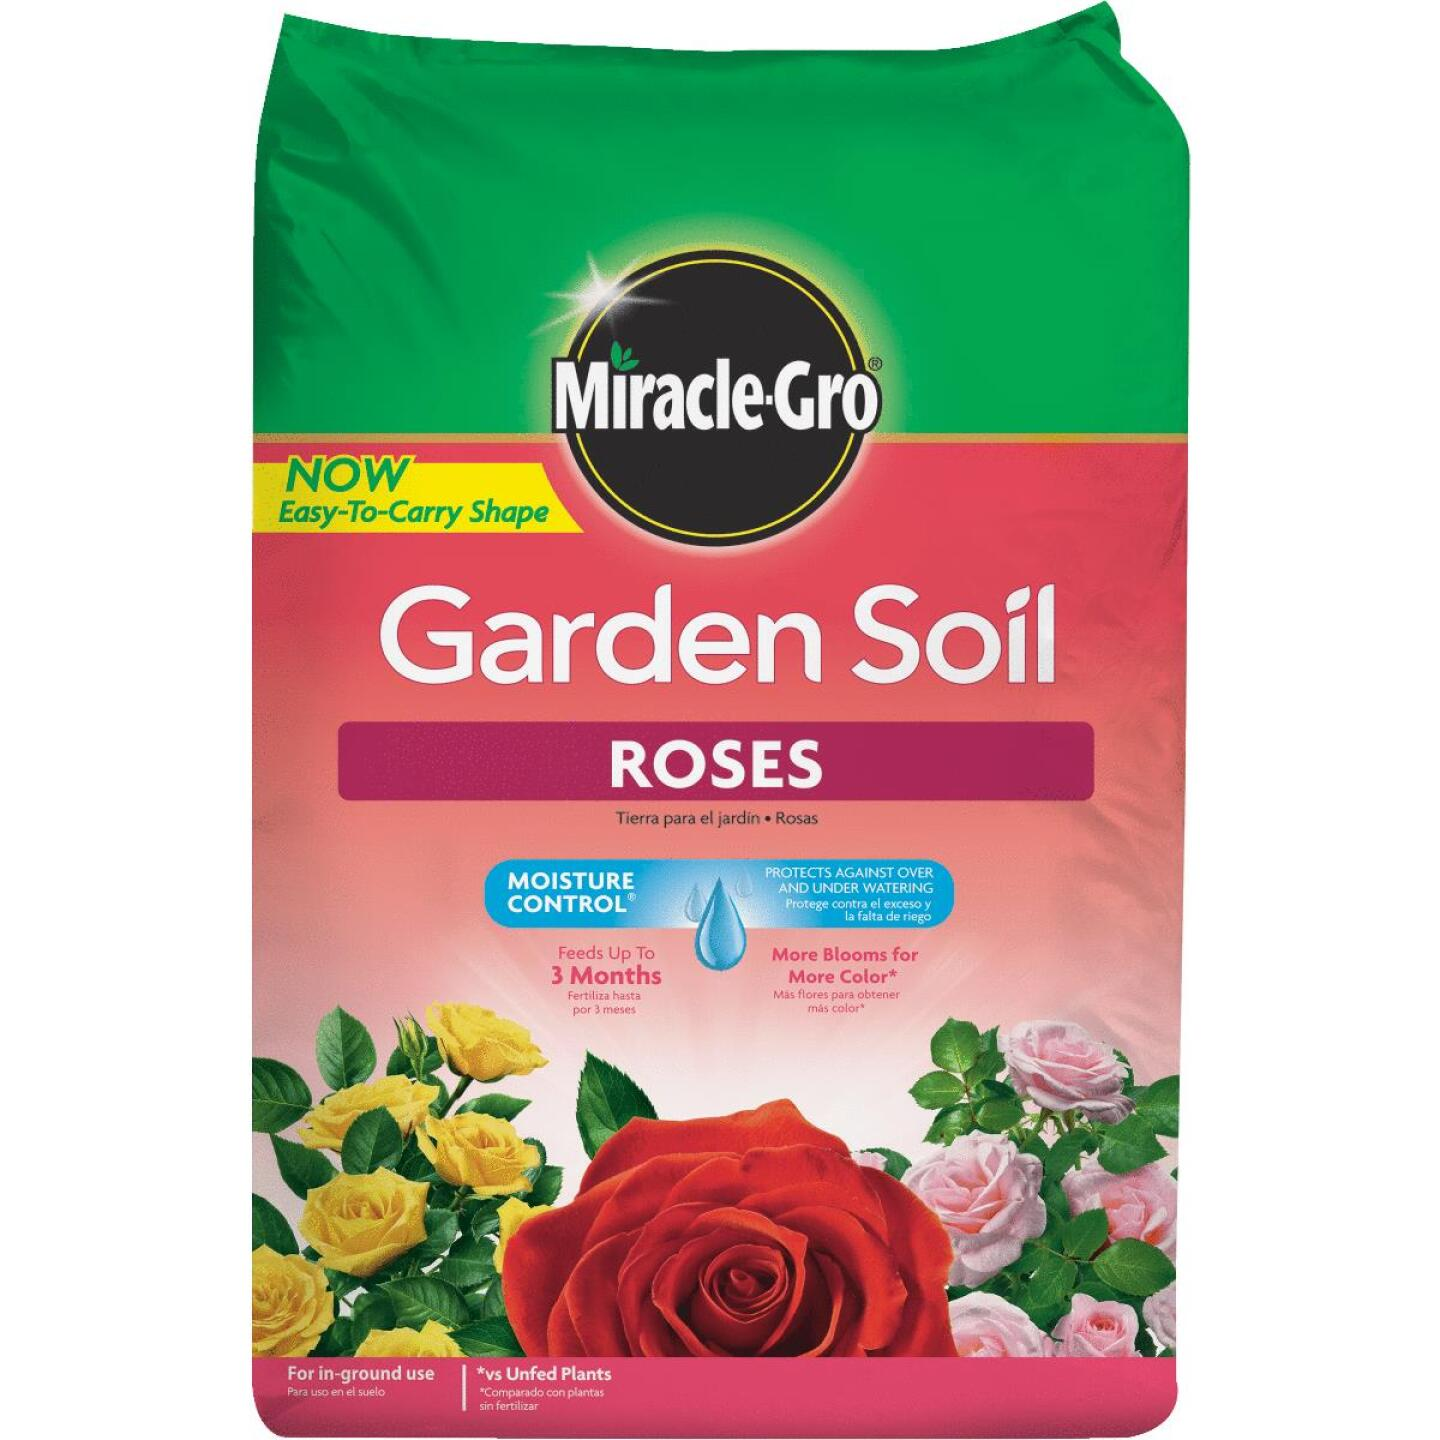 Miracle-Gro 1.5 Cu. Ft. 49 Lb. In-Ground Rose Garden Soil Image 1